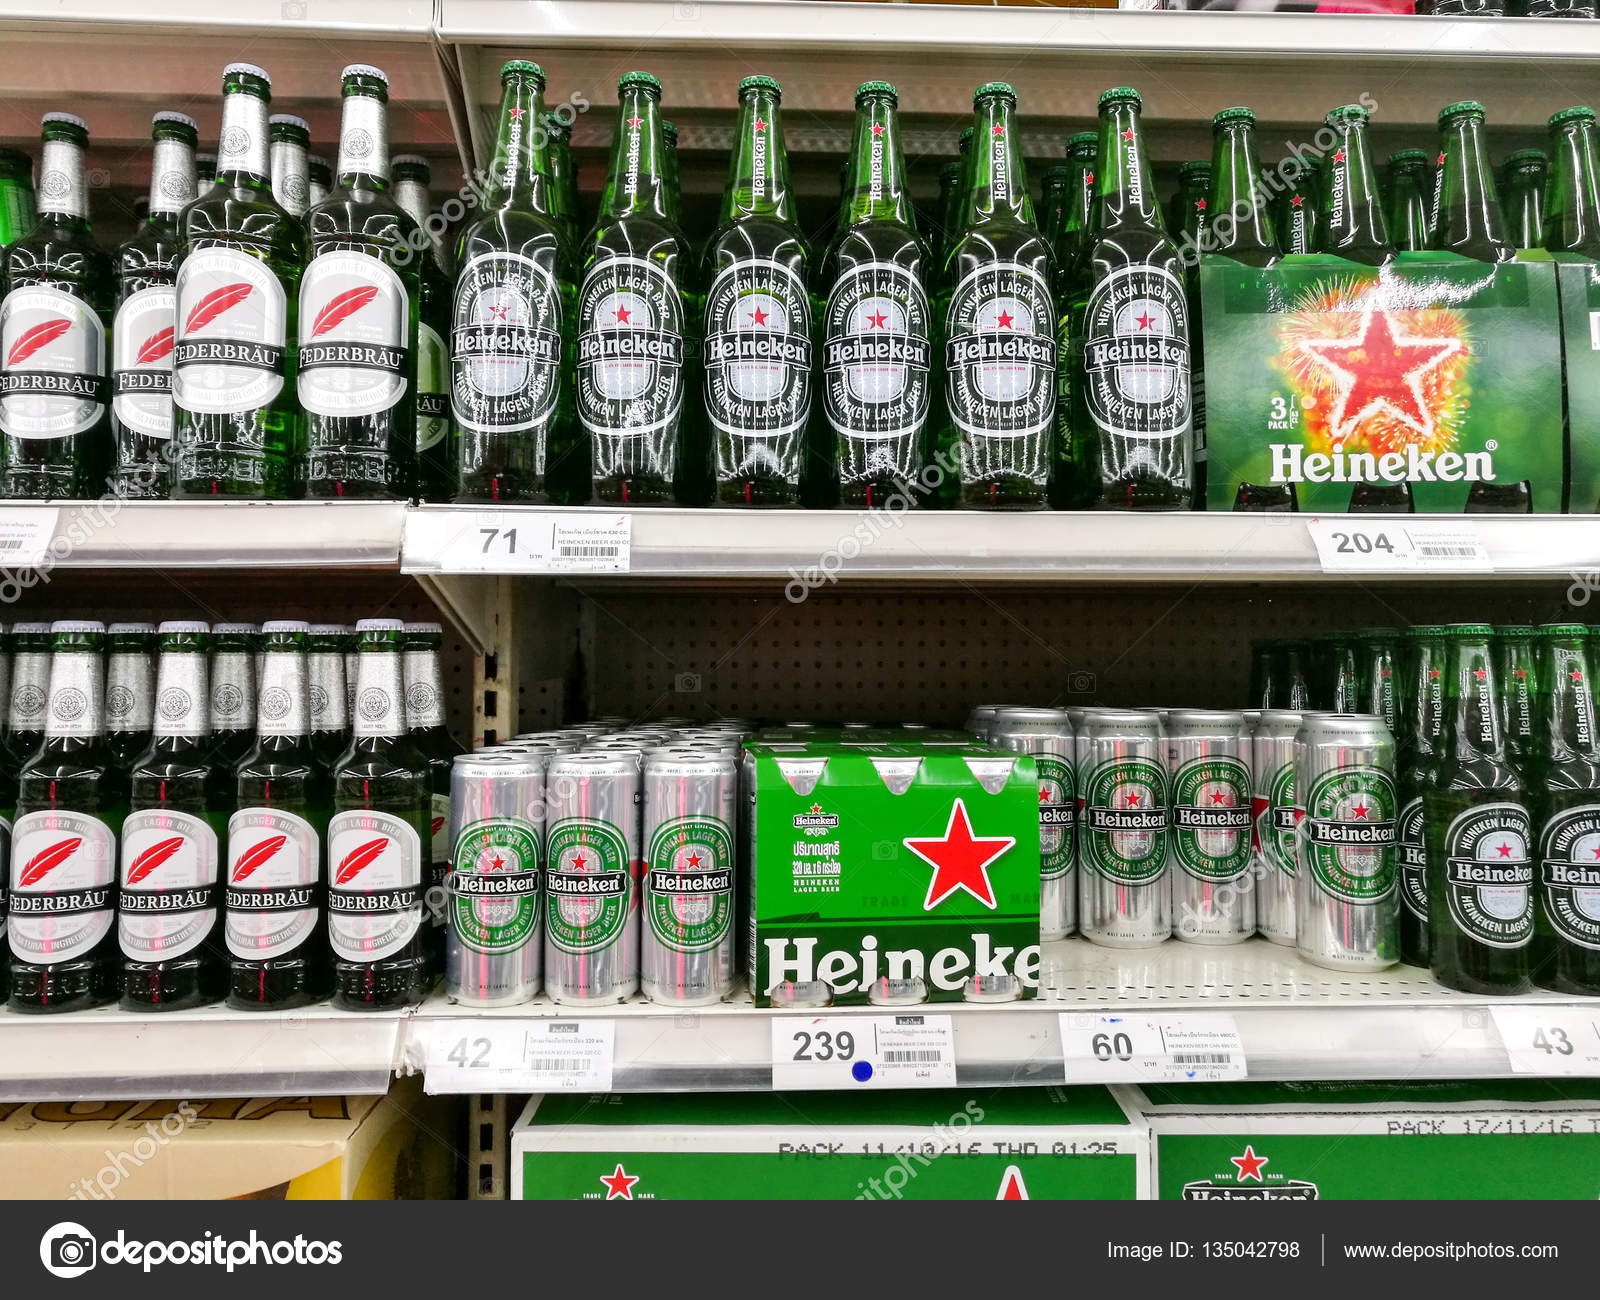 heineken marketing and business analysis Welcome to the global website for heineken international find information about our company, strategy, people and values here.